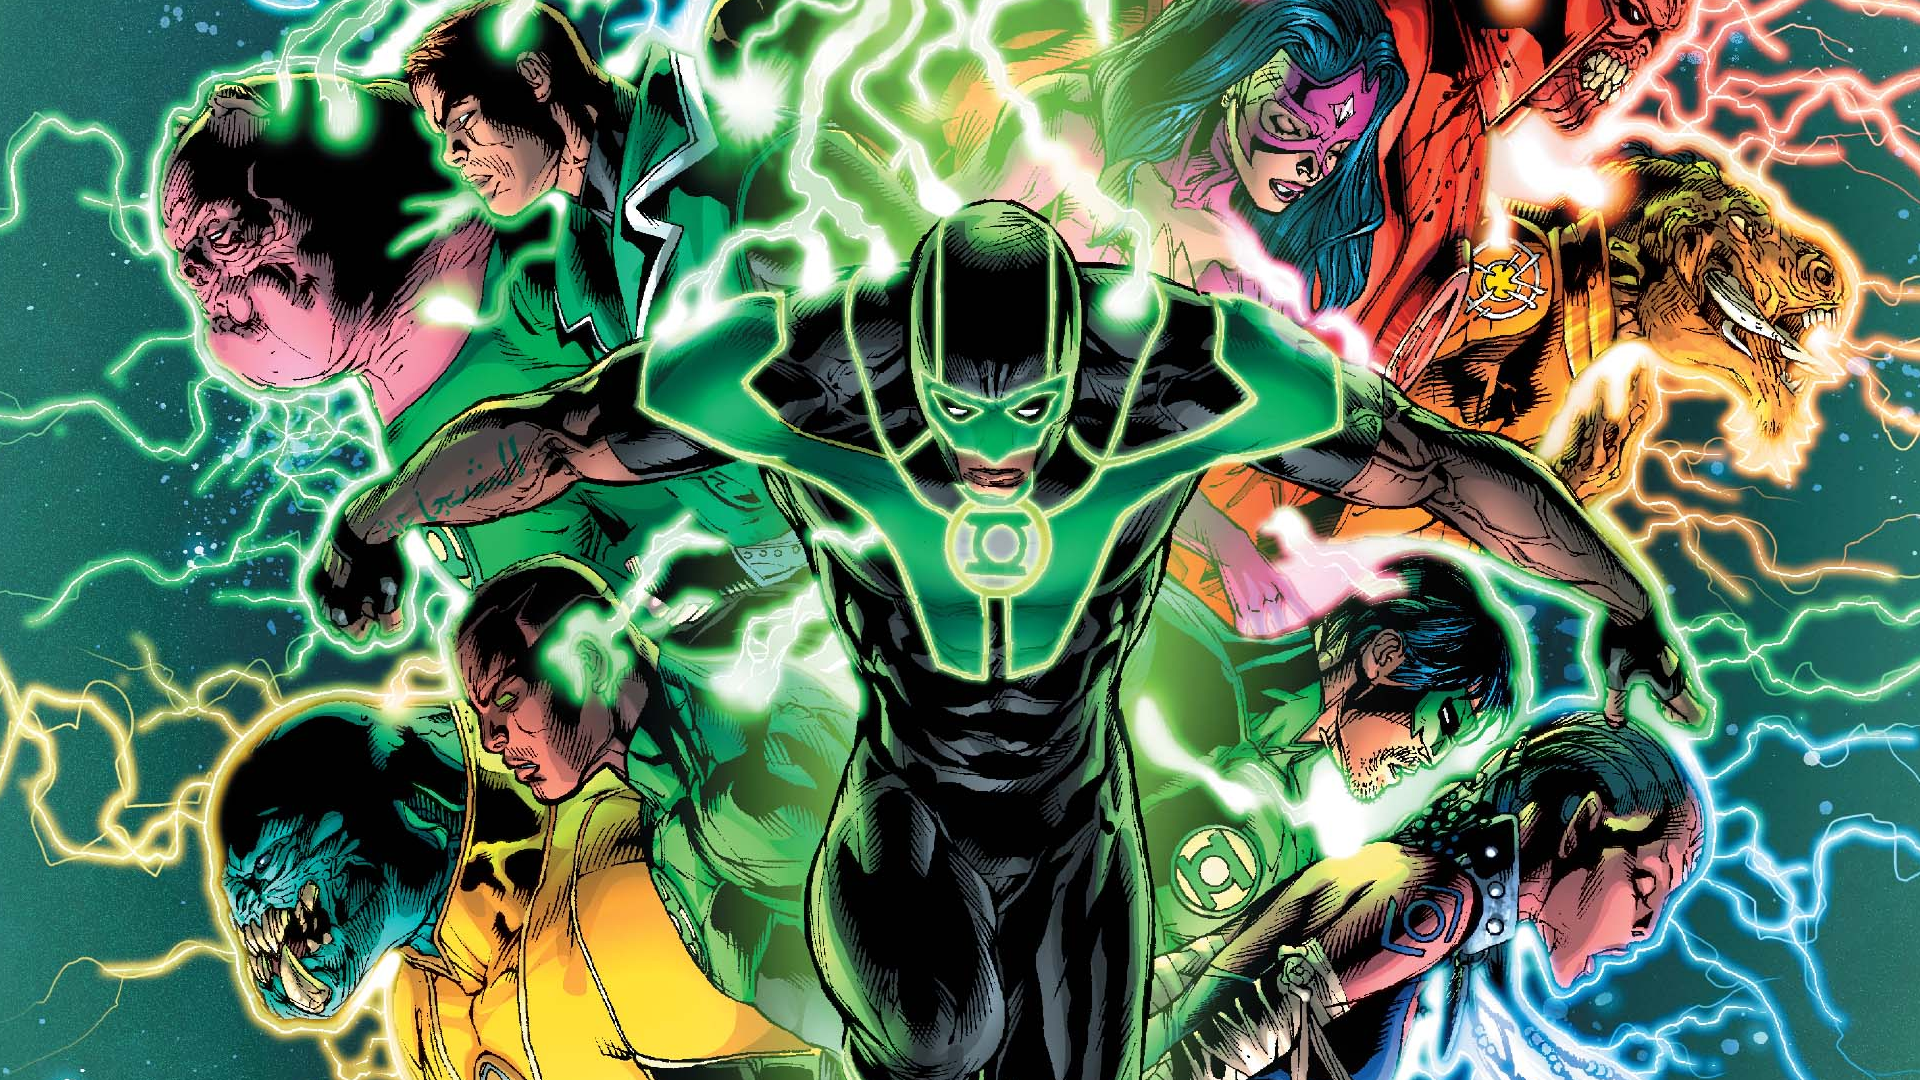 Wallpapers for Green Lantern - Resolution 1920x1080 px